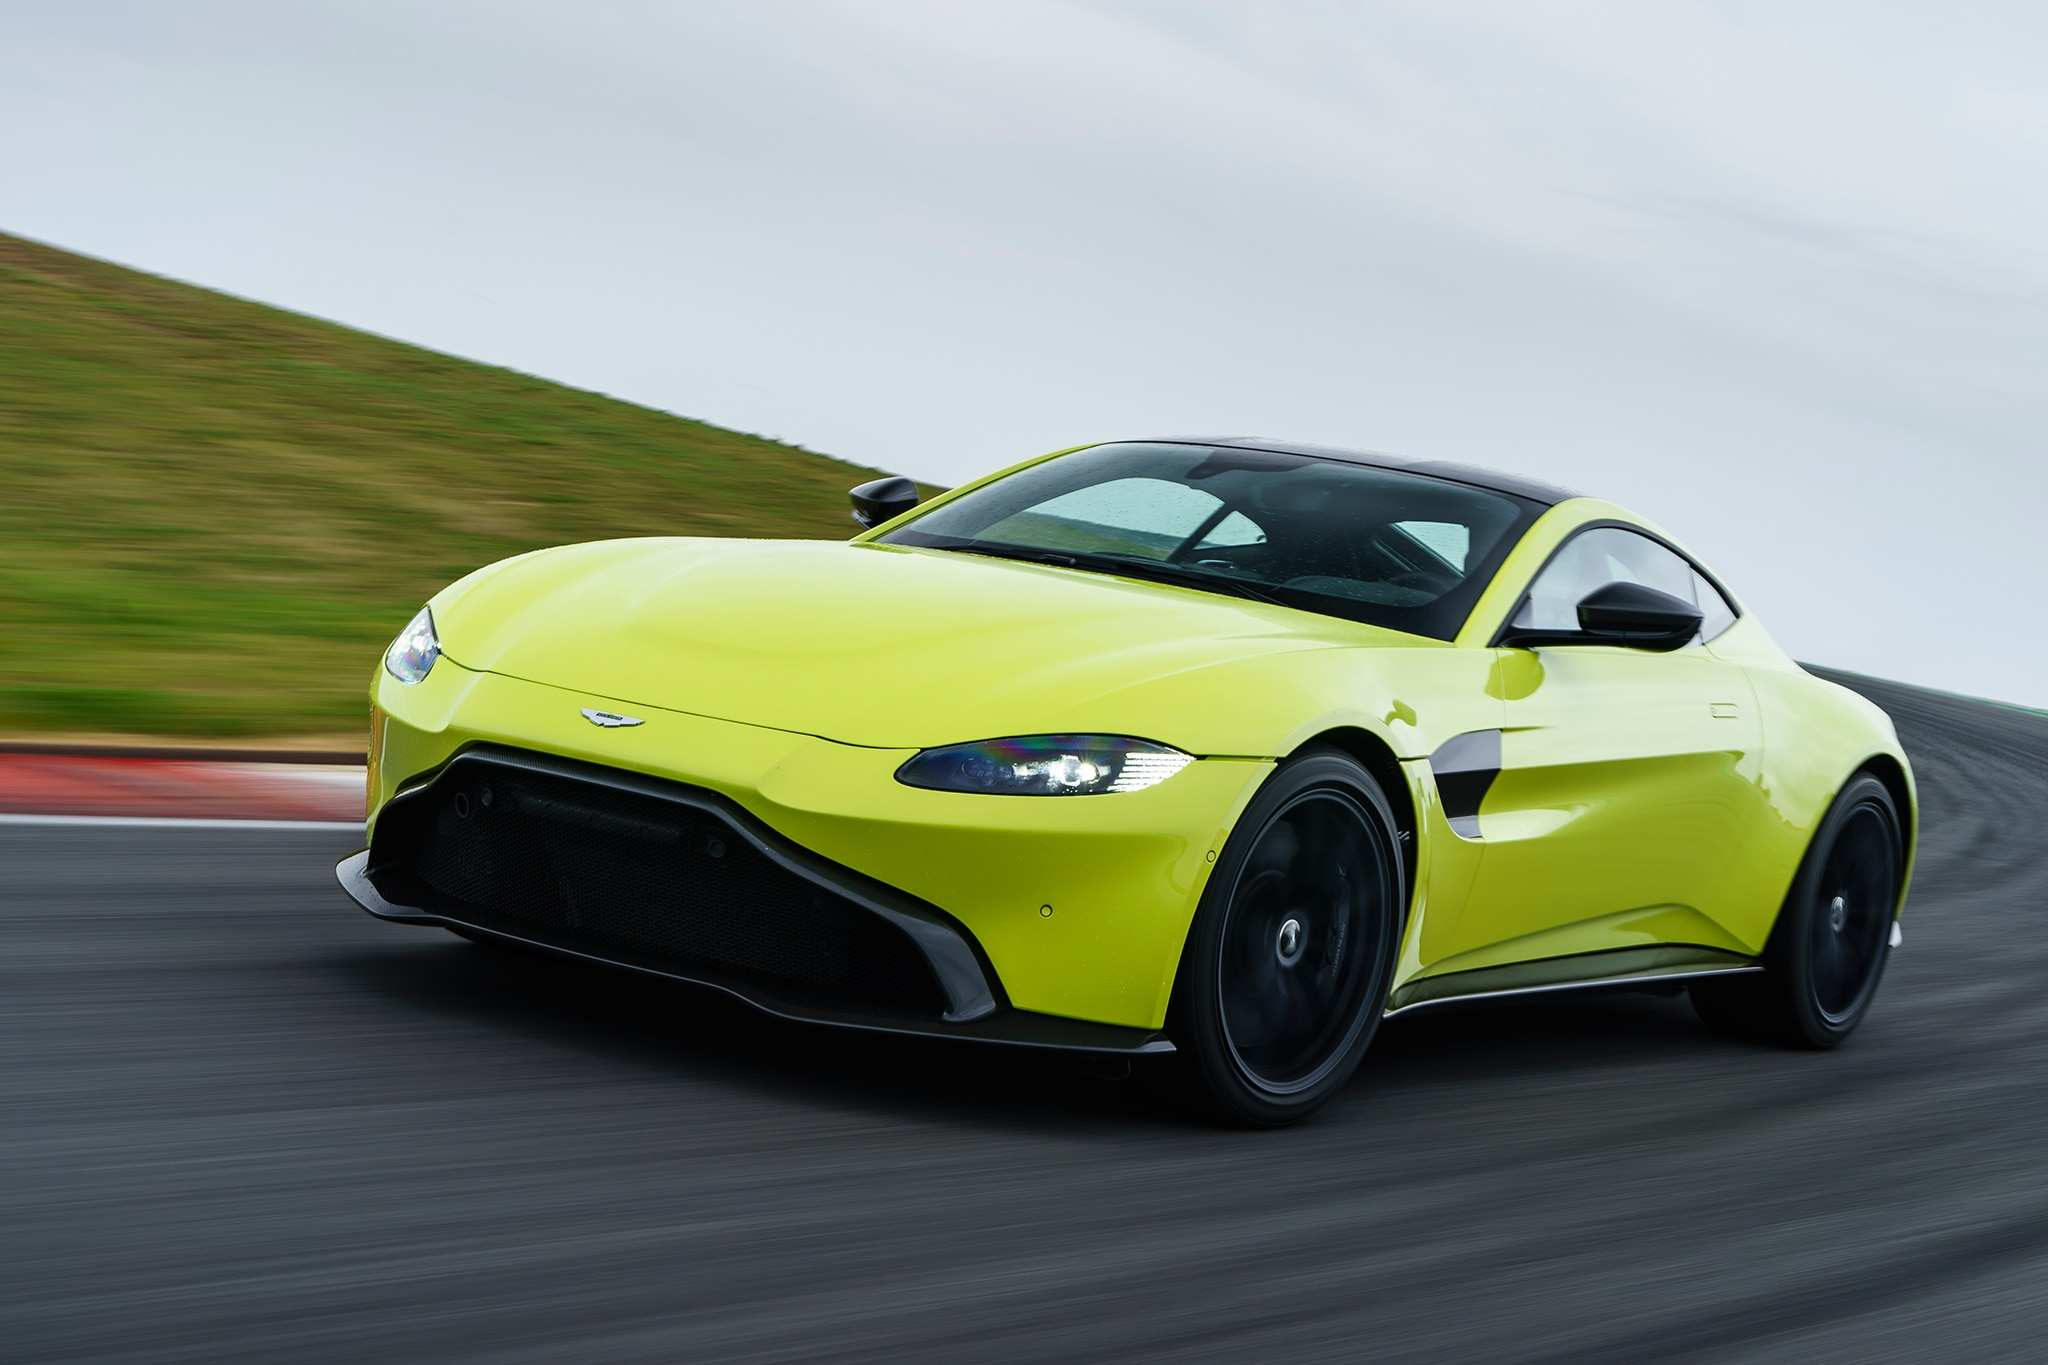 53 Concept of 2019 Aston Martin Vantage Msrp Research New for 2019 Aston Martin Vantage Msrp